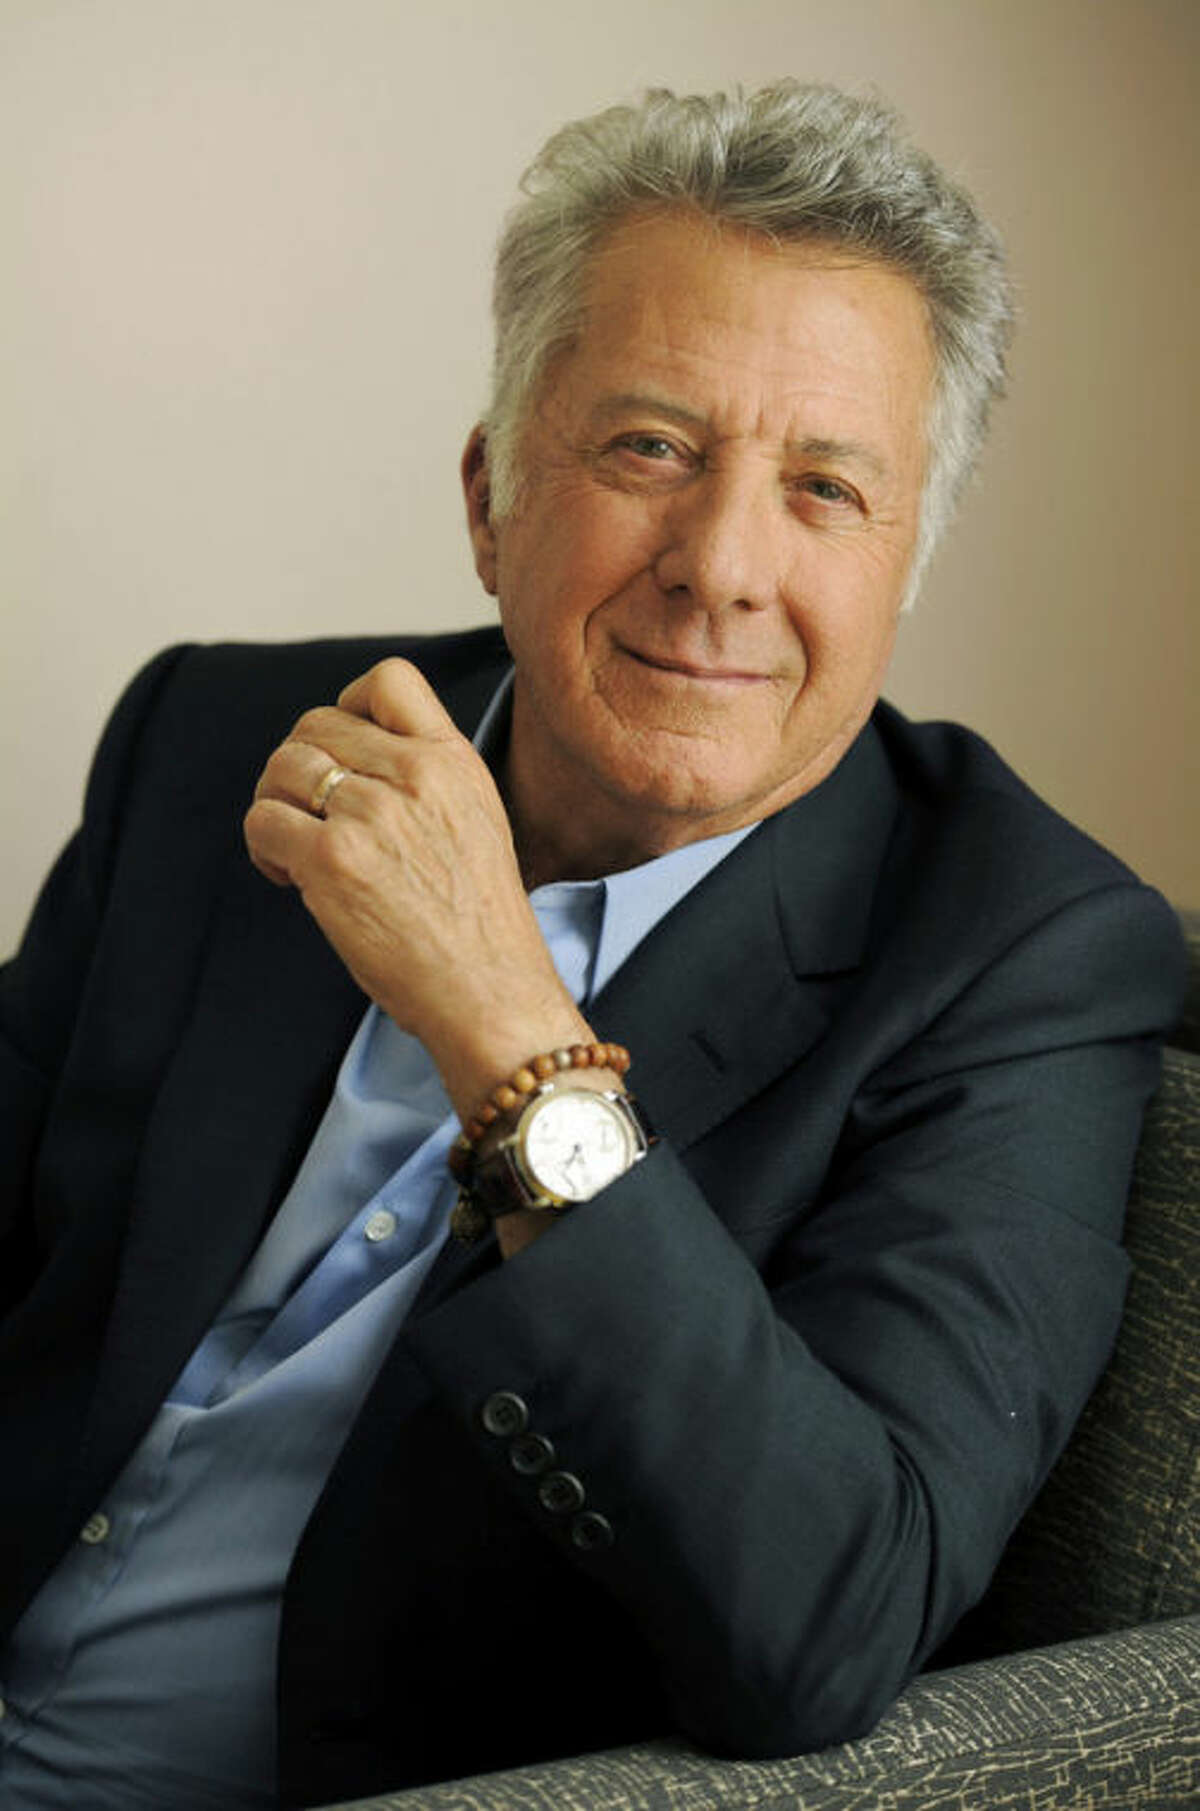 """FILE - In this Sept. 10, 2012 file photo, Dustin Hoffman, director of the film """"Quartet,"""" poses for a portrait at the 2012 Toronto Film Festival, in Toronto. The 75-year-old Hoffman went behind the camera for ?""""Quartet,?"""" starring Maggie Smith, Tom Courtenay, Billy Connolly and Pauline Collins as aging British opera divas at a retirement home for musicians who put aside past differences for a reunion concert. (Photo by Chris Pizzello/Invision/AP, File)"""